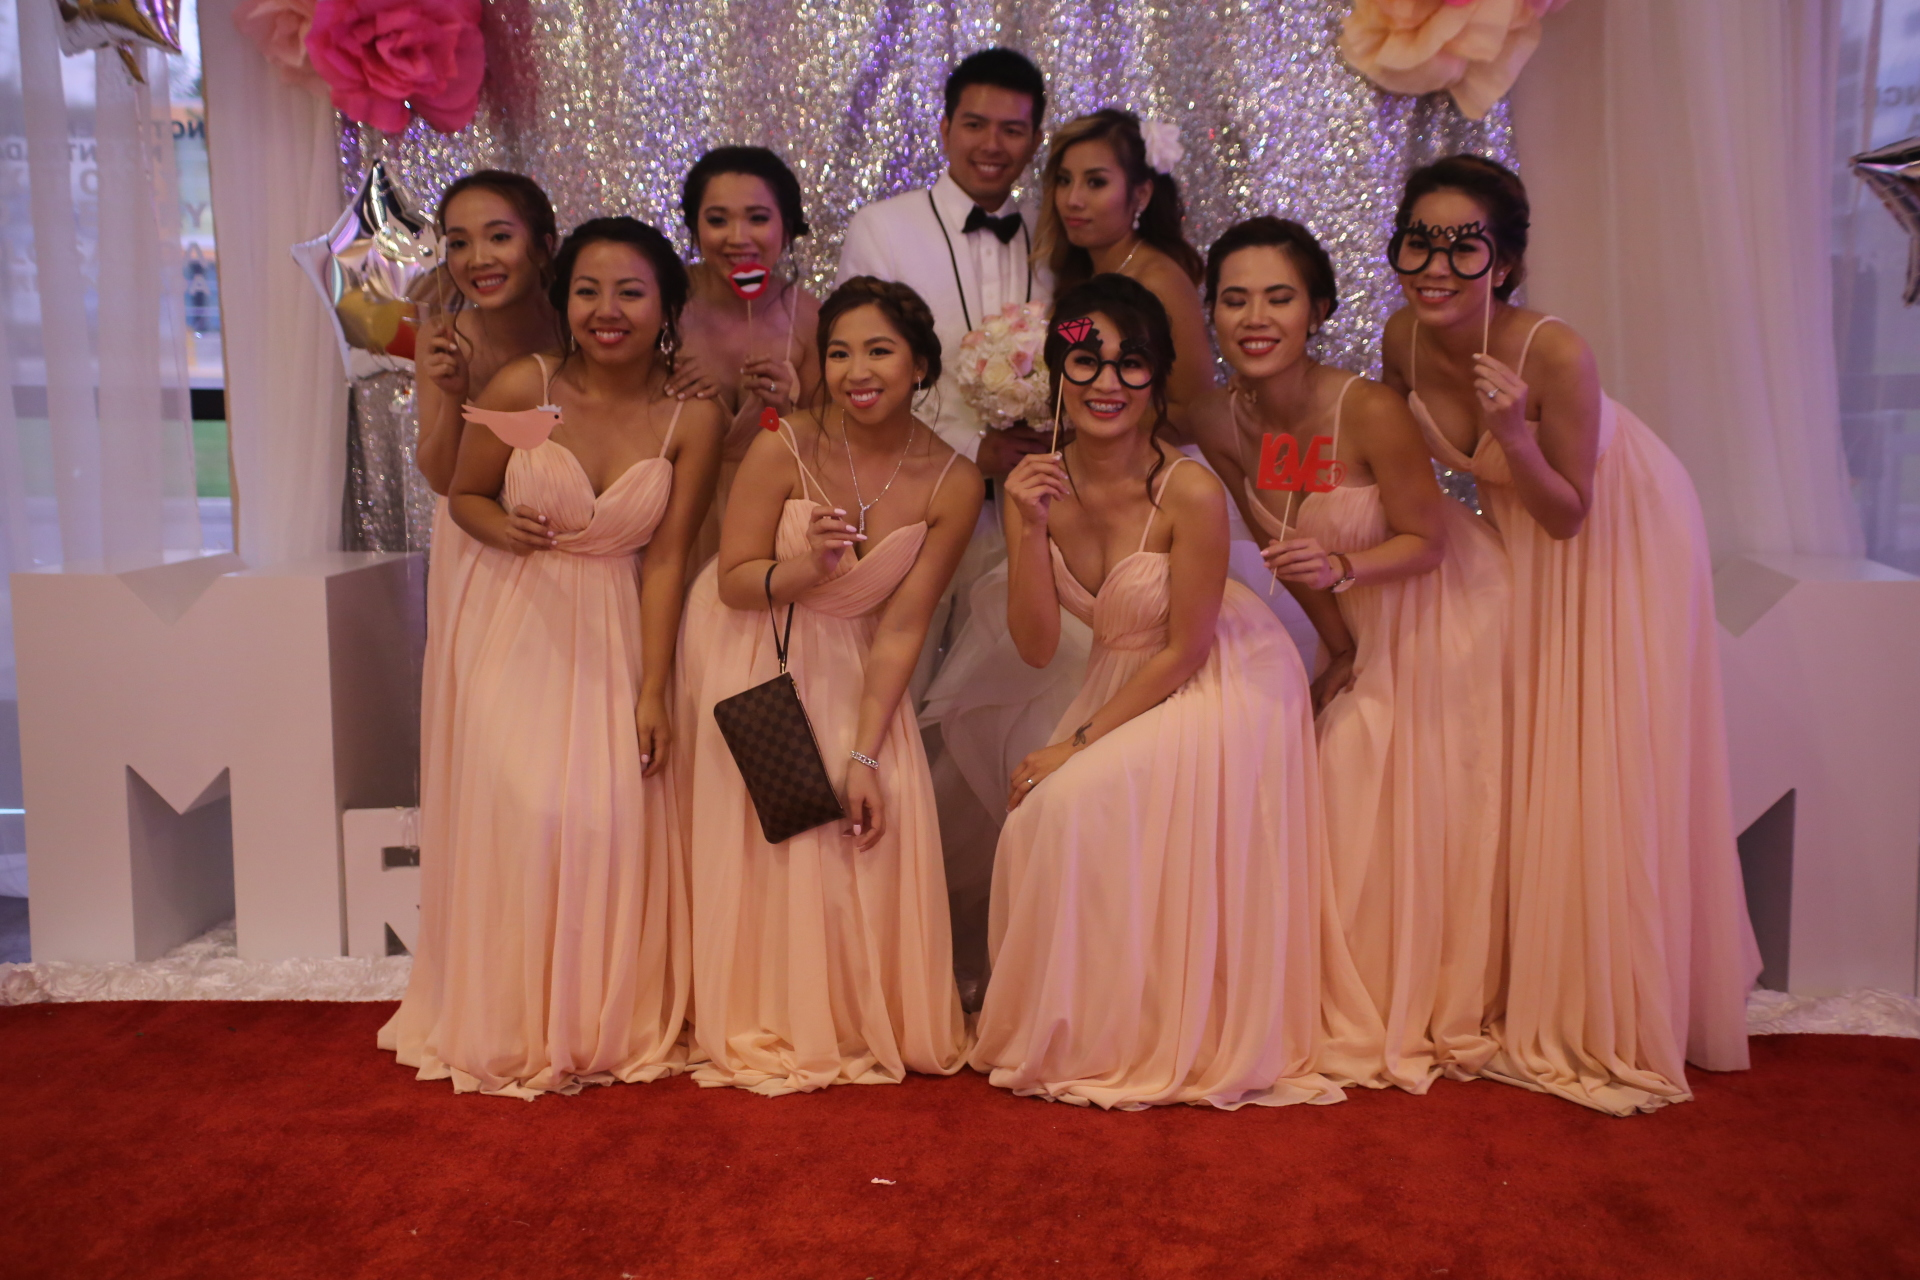 Bridesmaids, Groom and the Bride